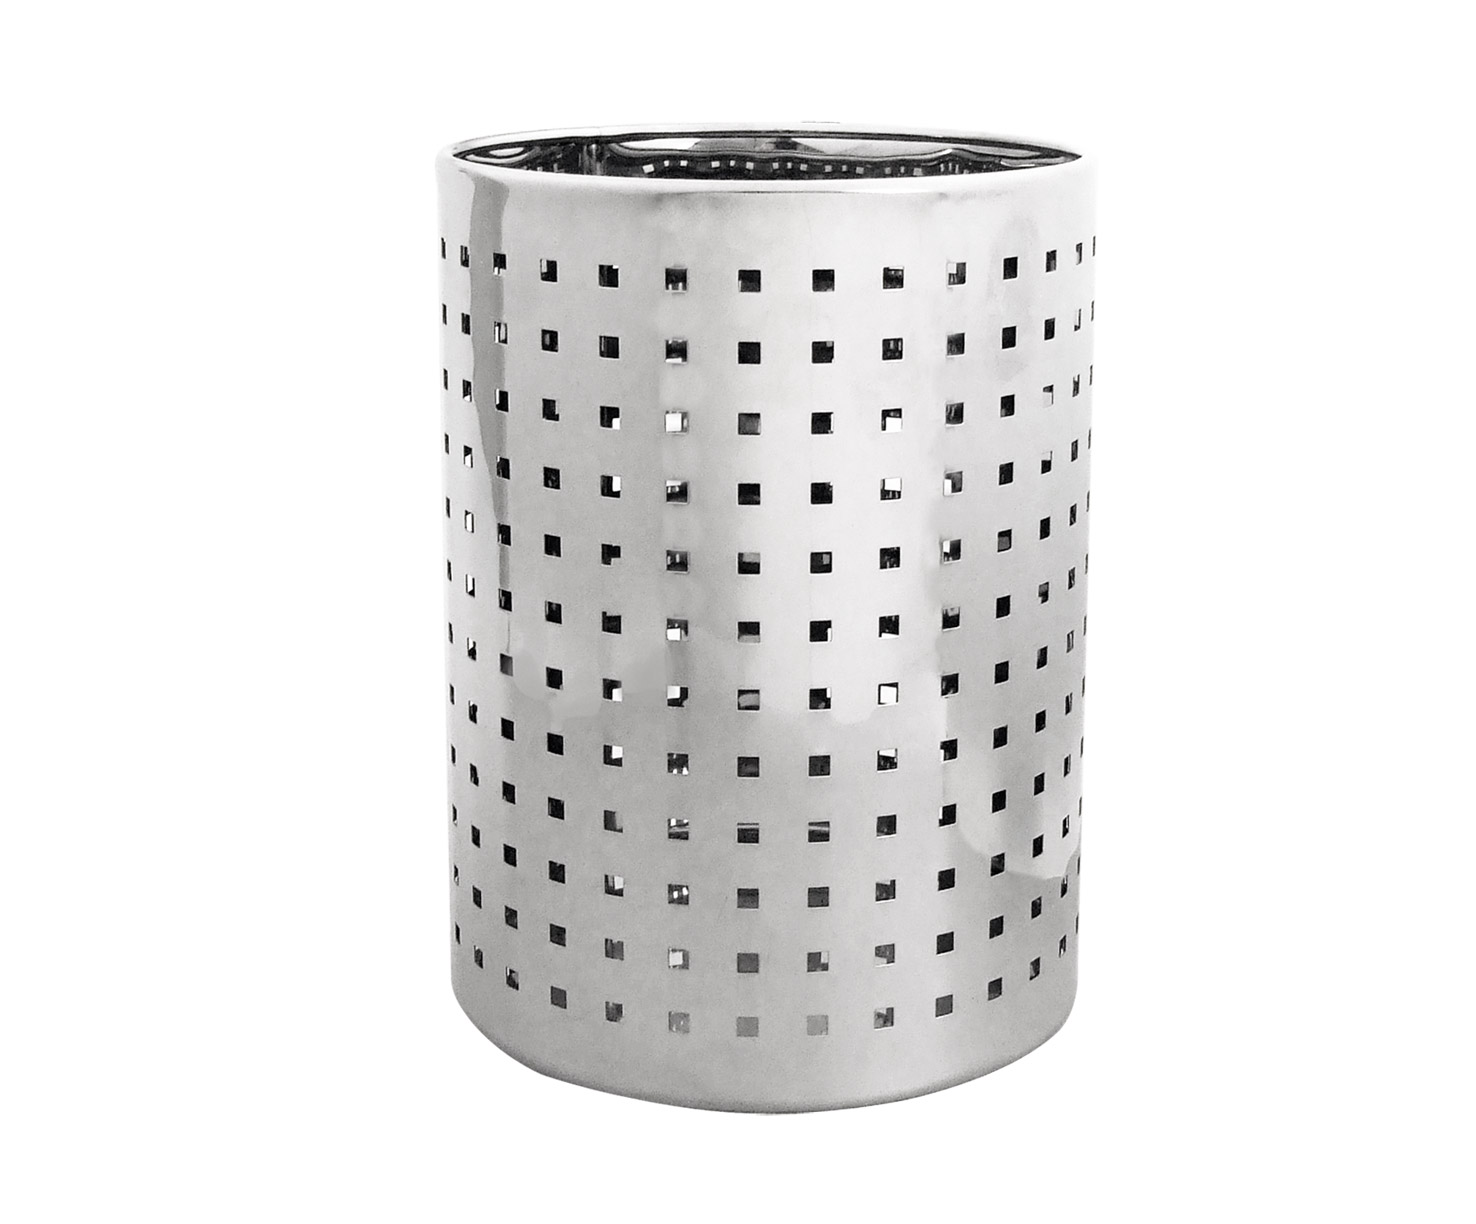 Stainless Steel 8L Round Waste Bin W